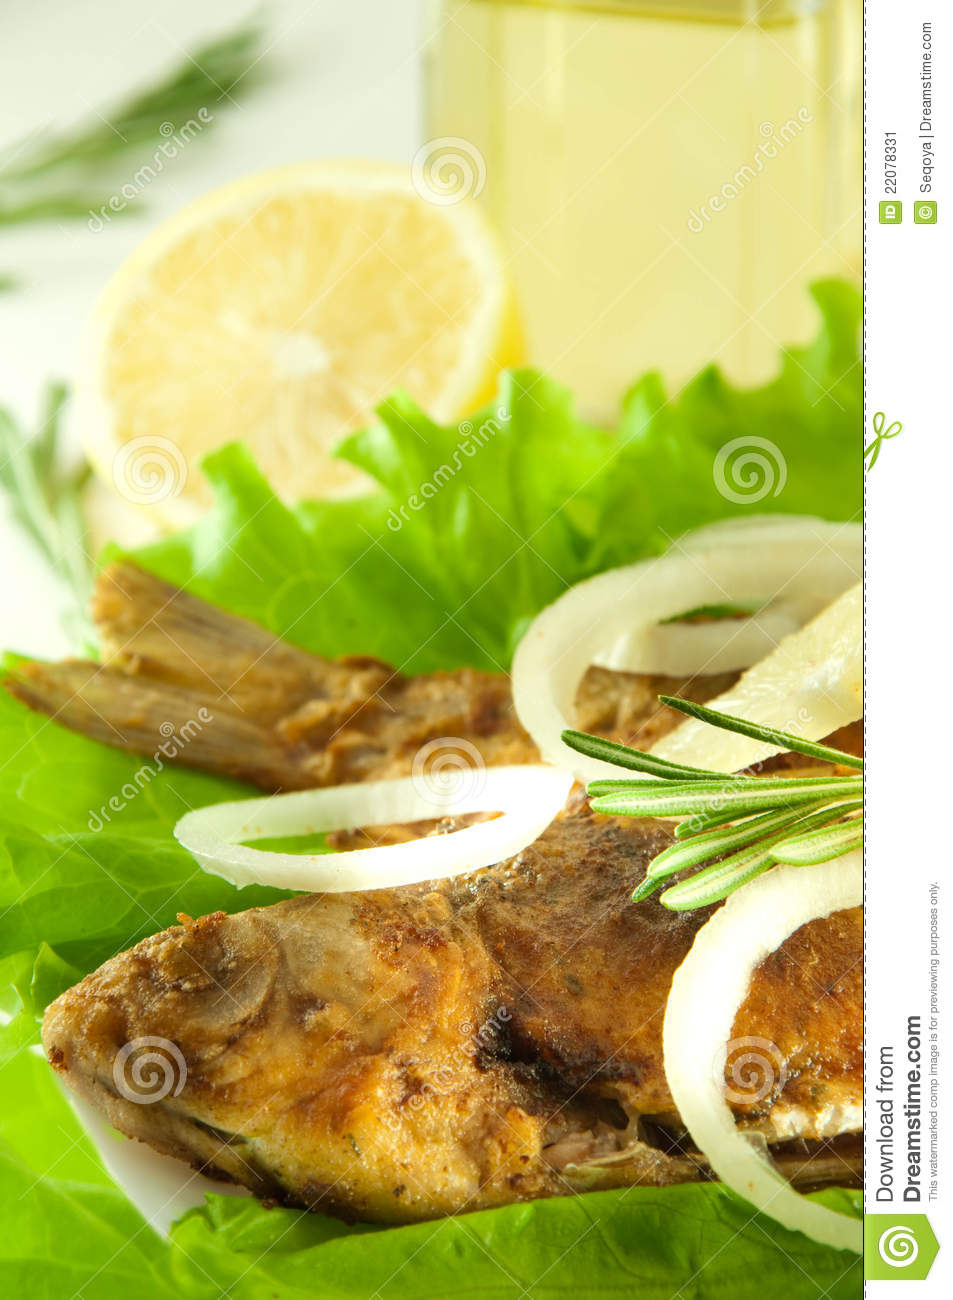 Fish fried a crucian with a lemon rosemary stock image for Frying fish in olive oil